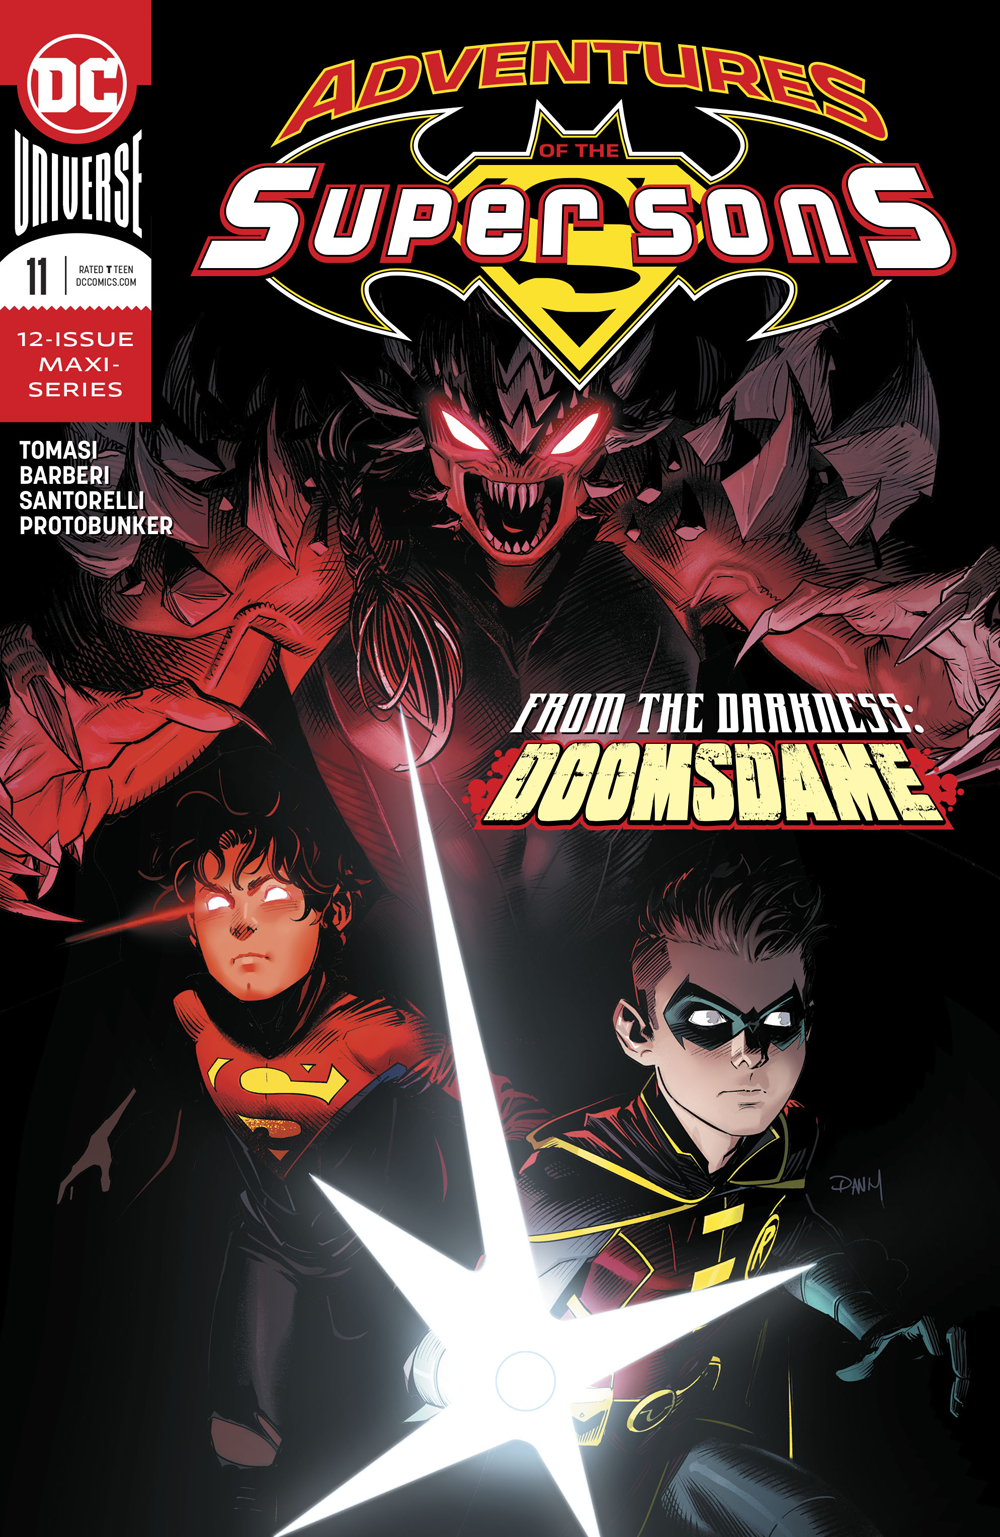 ADVENTURES OF THE SUPER SONS #11 (OF 12)